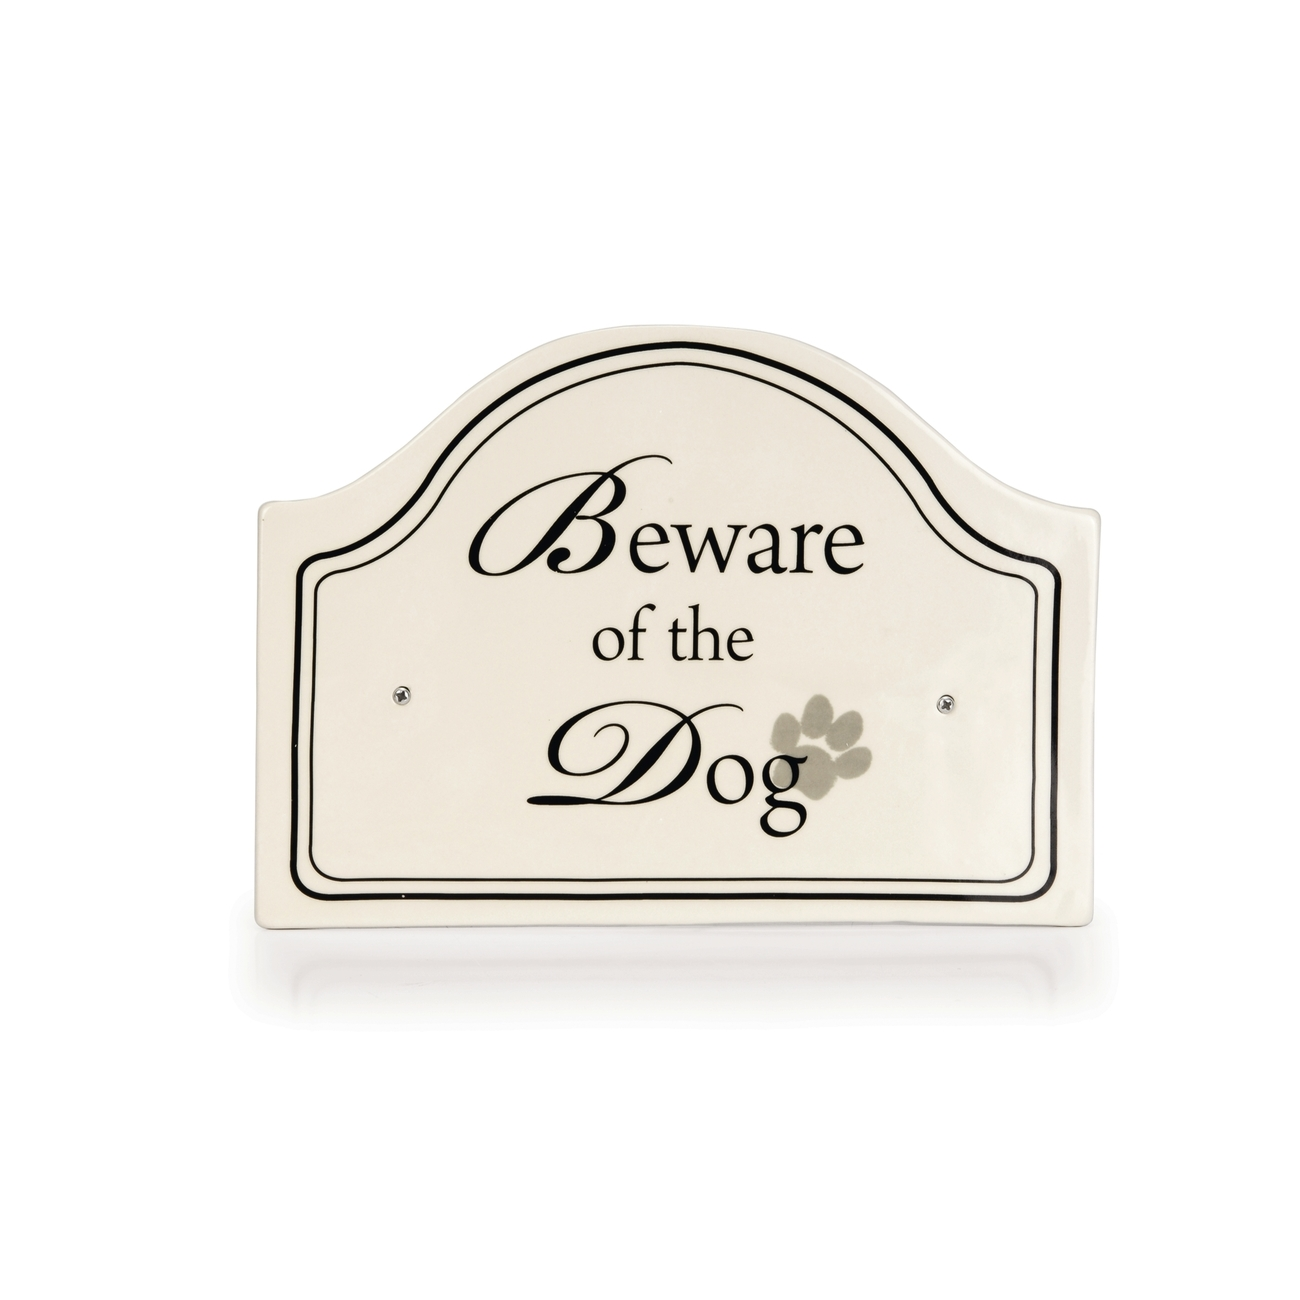 """Designed By Lotte Keramikschild """"Beware of the Dog"""" - Designed by Lotte"""